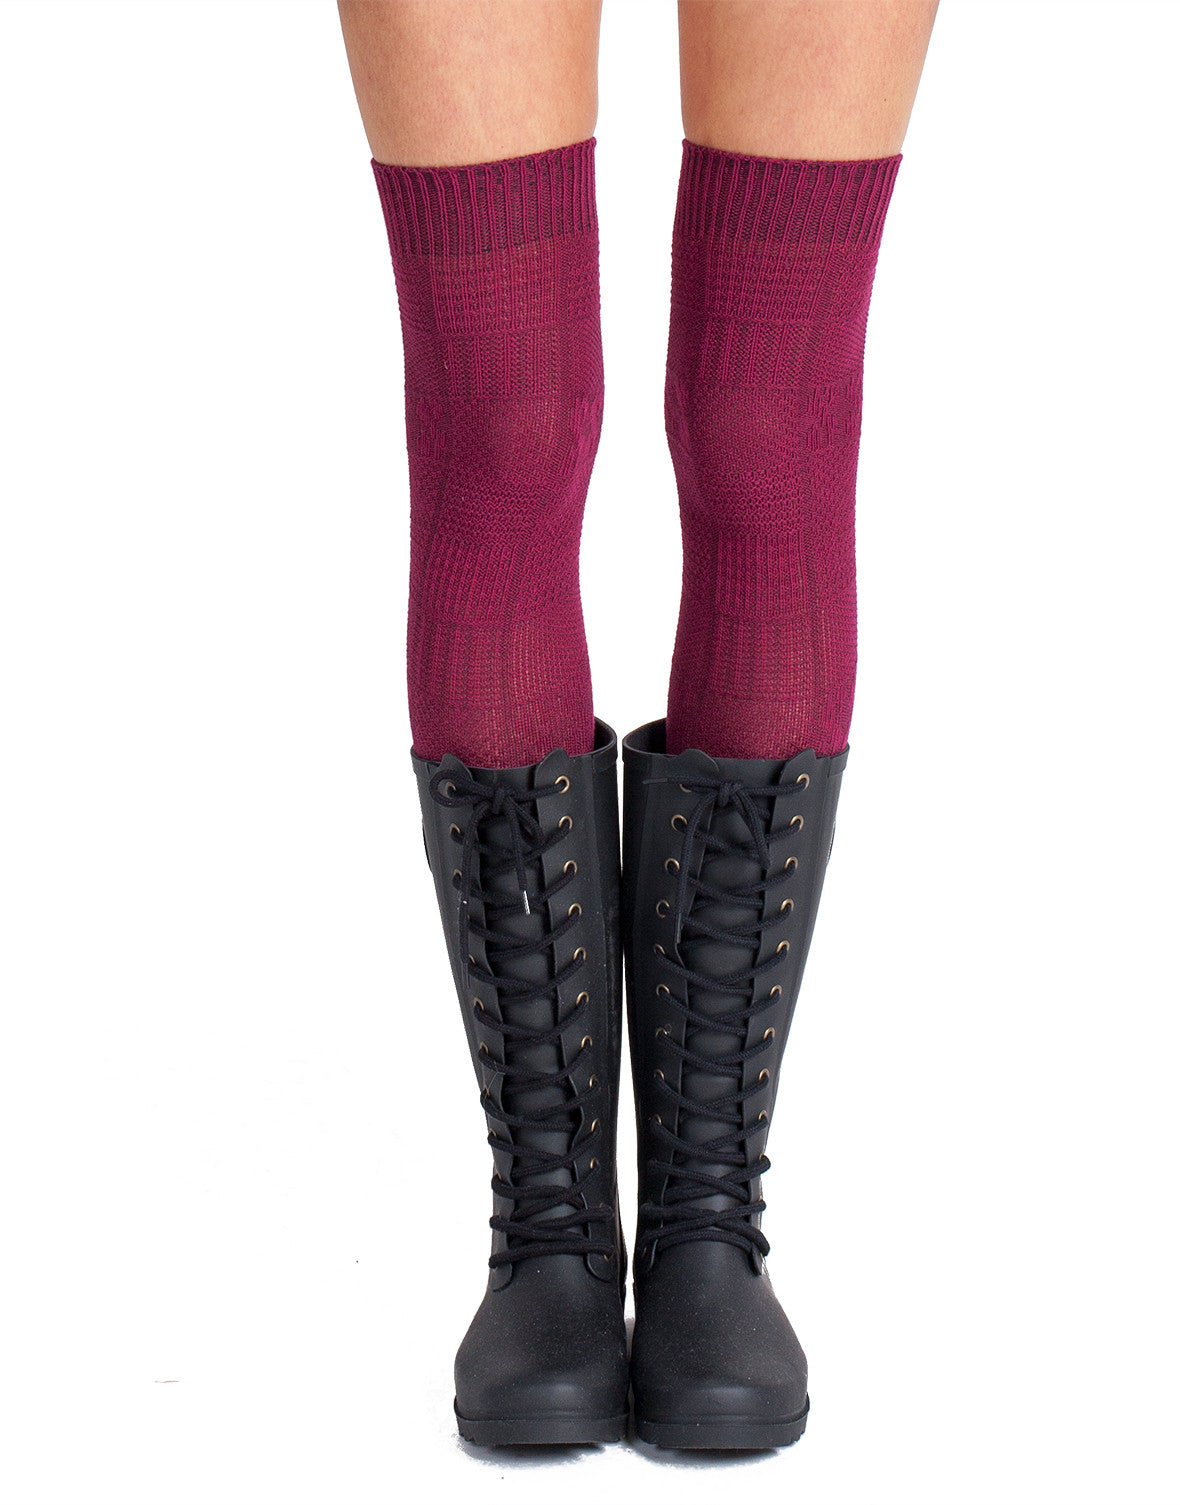 Knee High Cable Socks - Plum